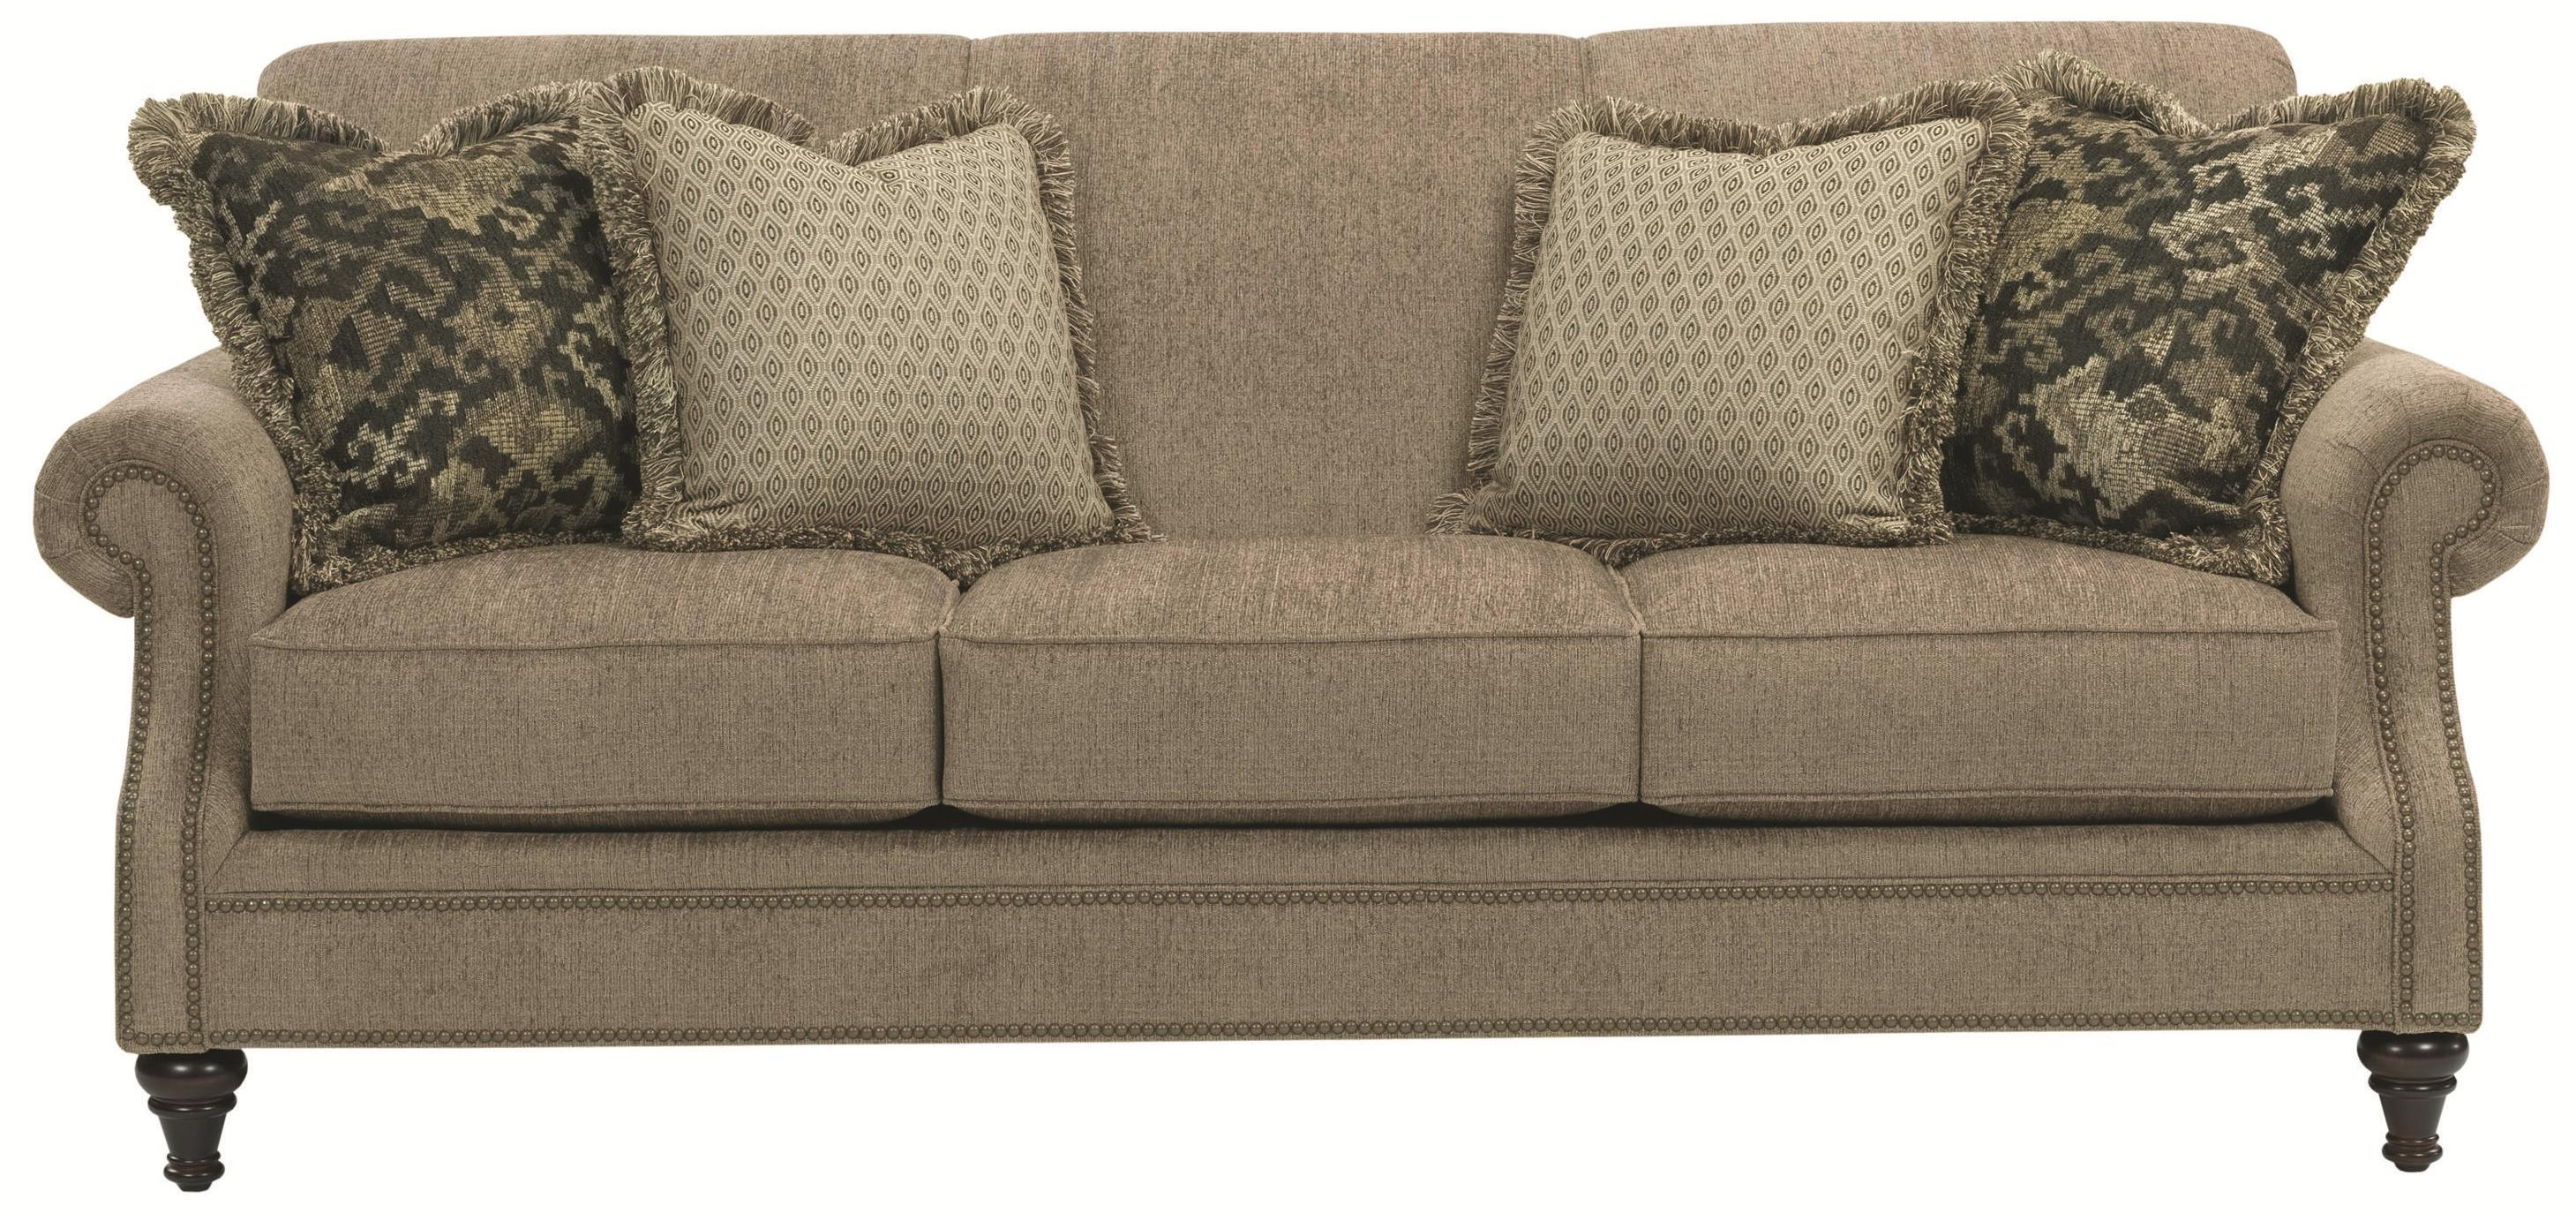 Broyhill Furniture Windsor Sofa With Rolled Arms – Wayside Intended For Windsor Sofas (Image 1 of 20)